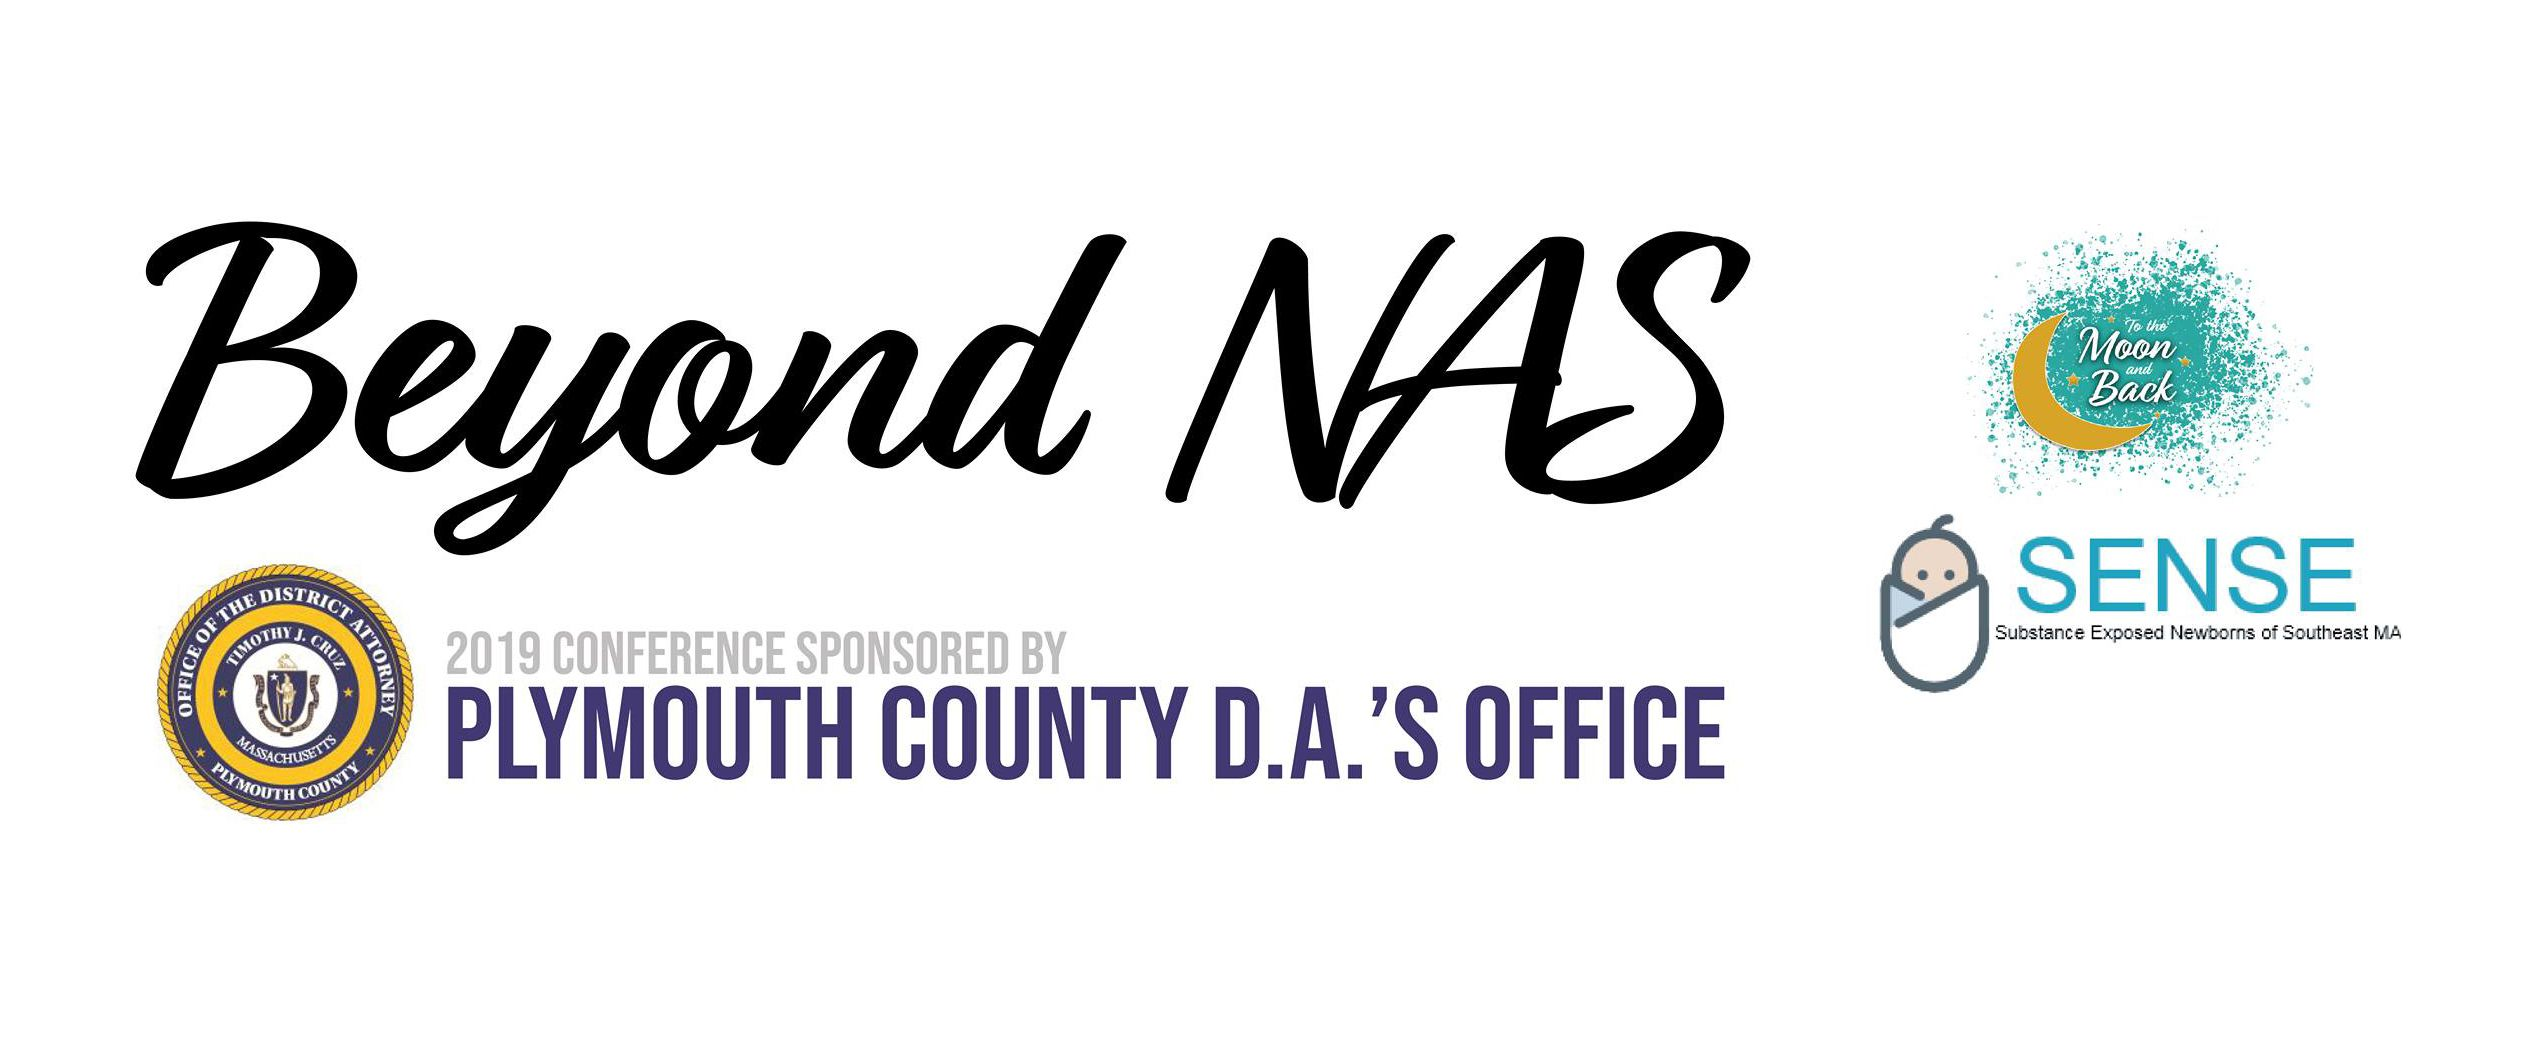 Beyond NAS 2019 Conference Offers Summit on Neonatal